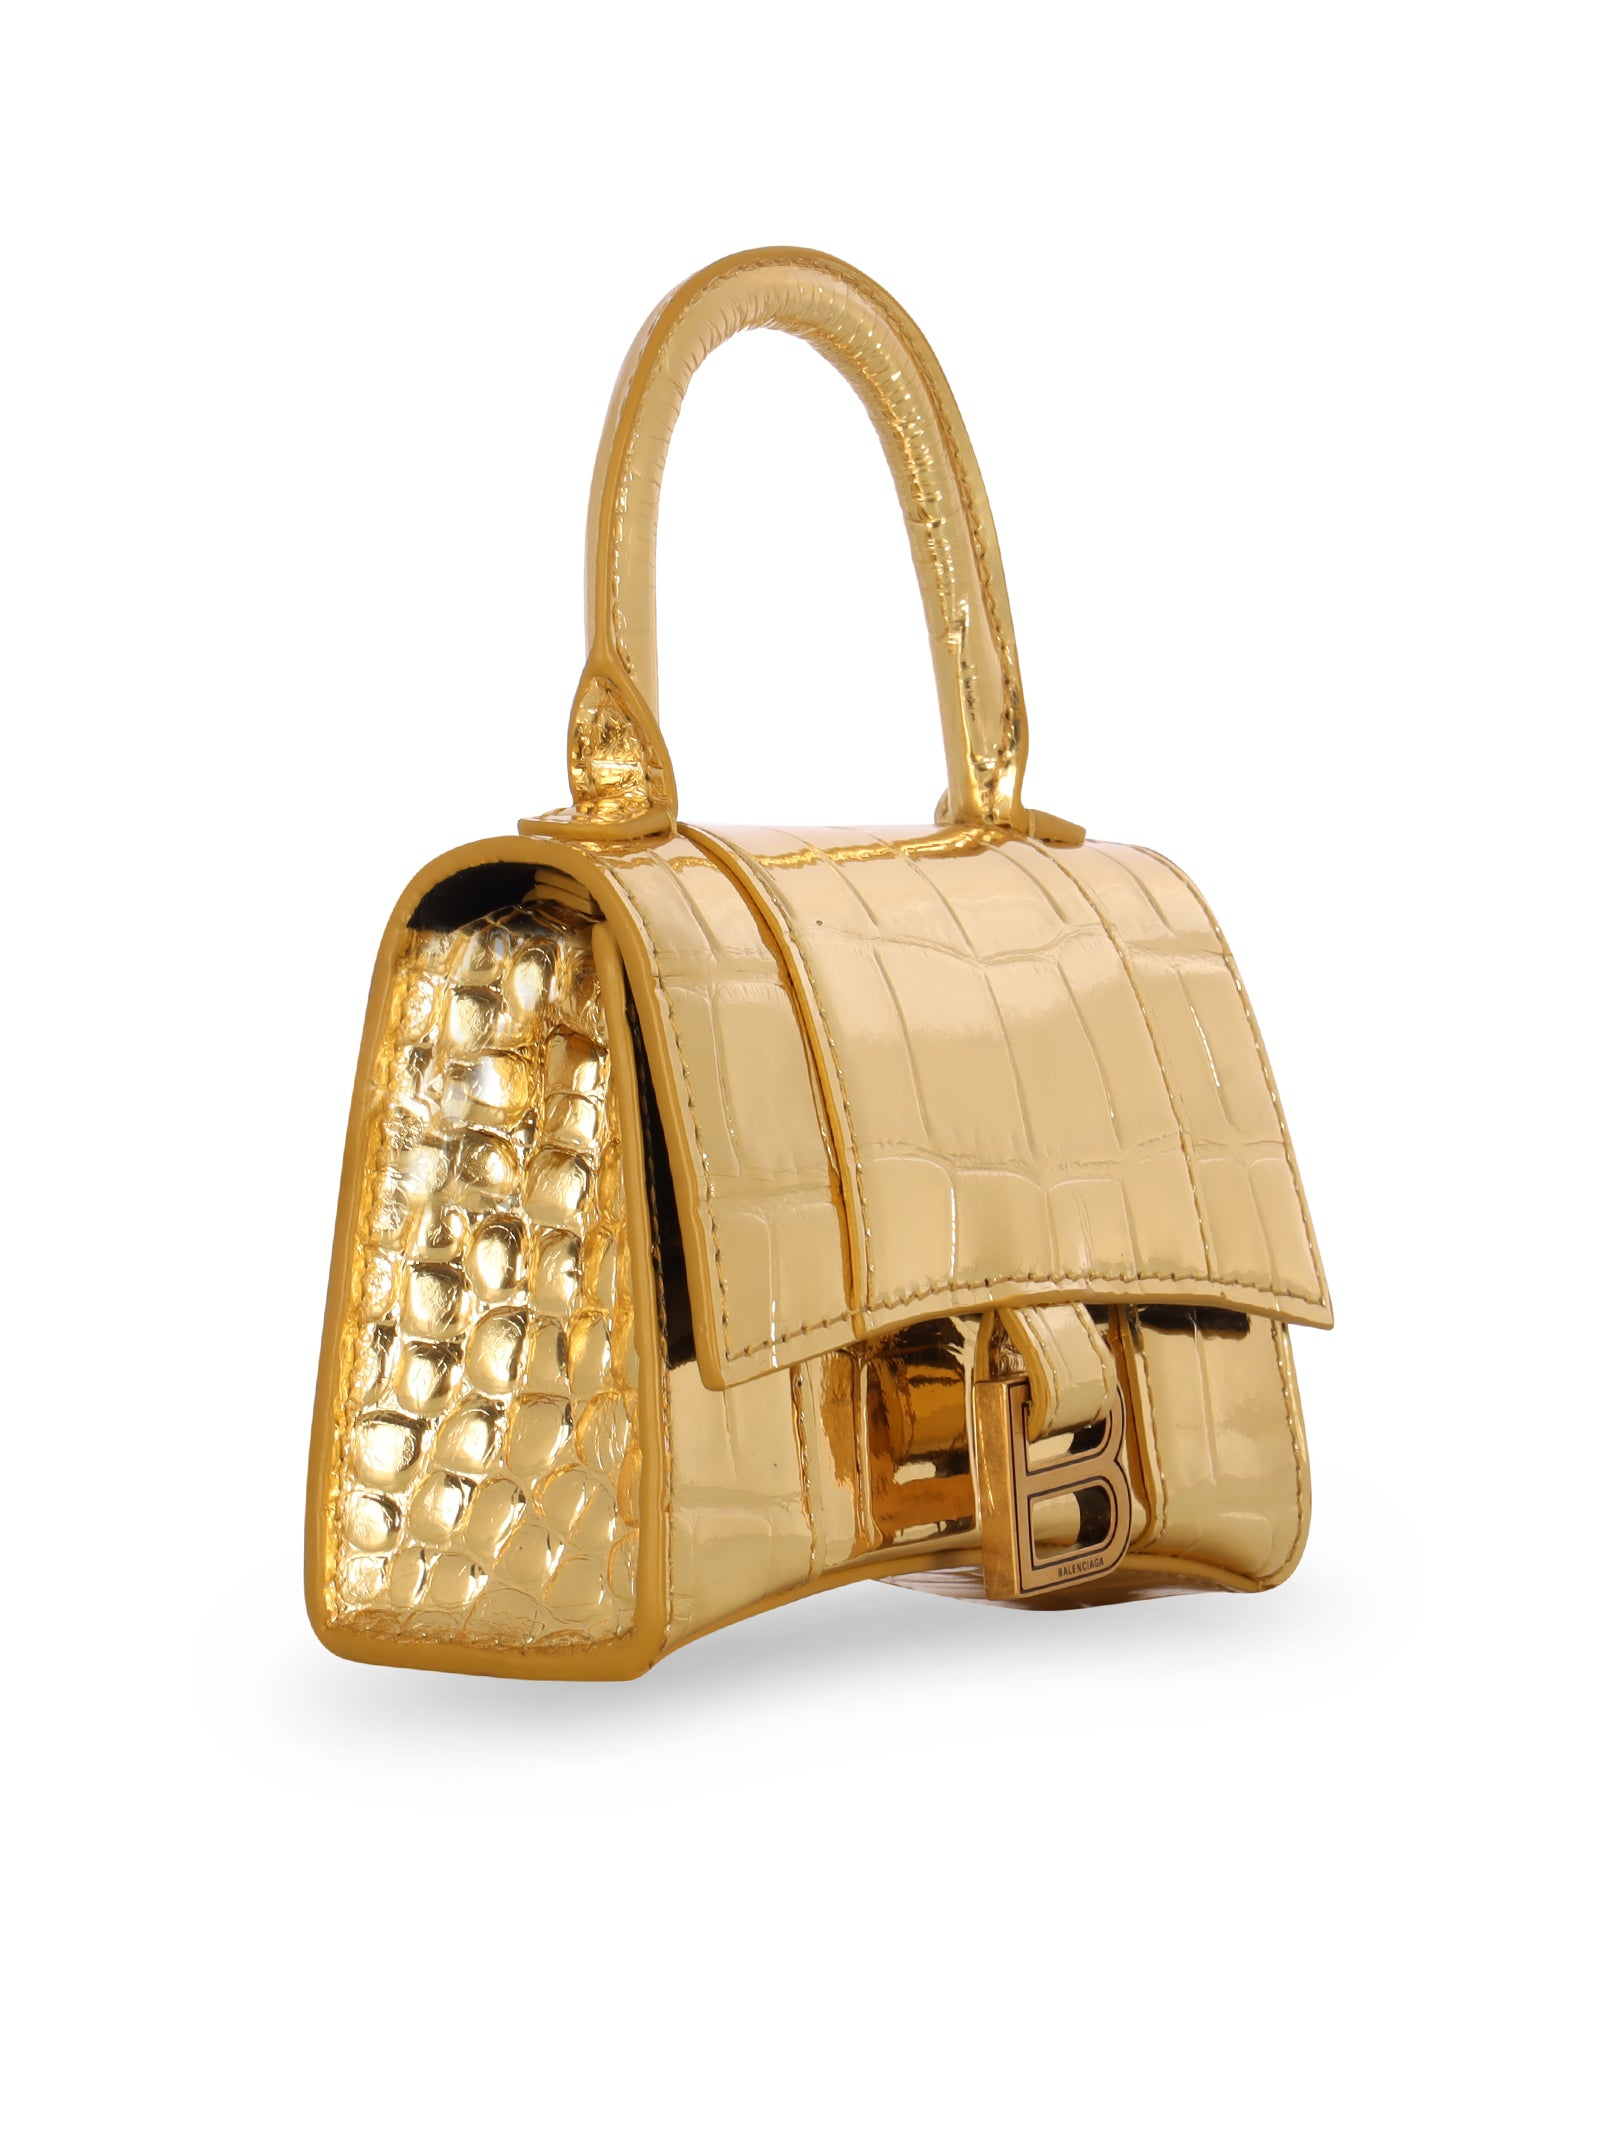 Hourglass Mini Top Handle Bag In Gold